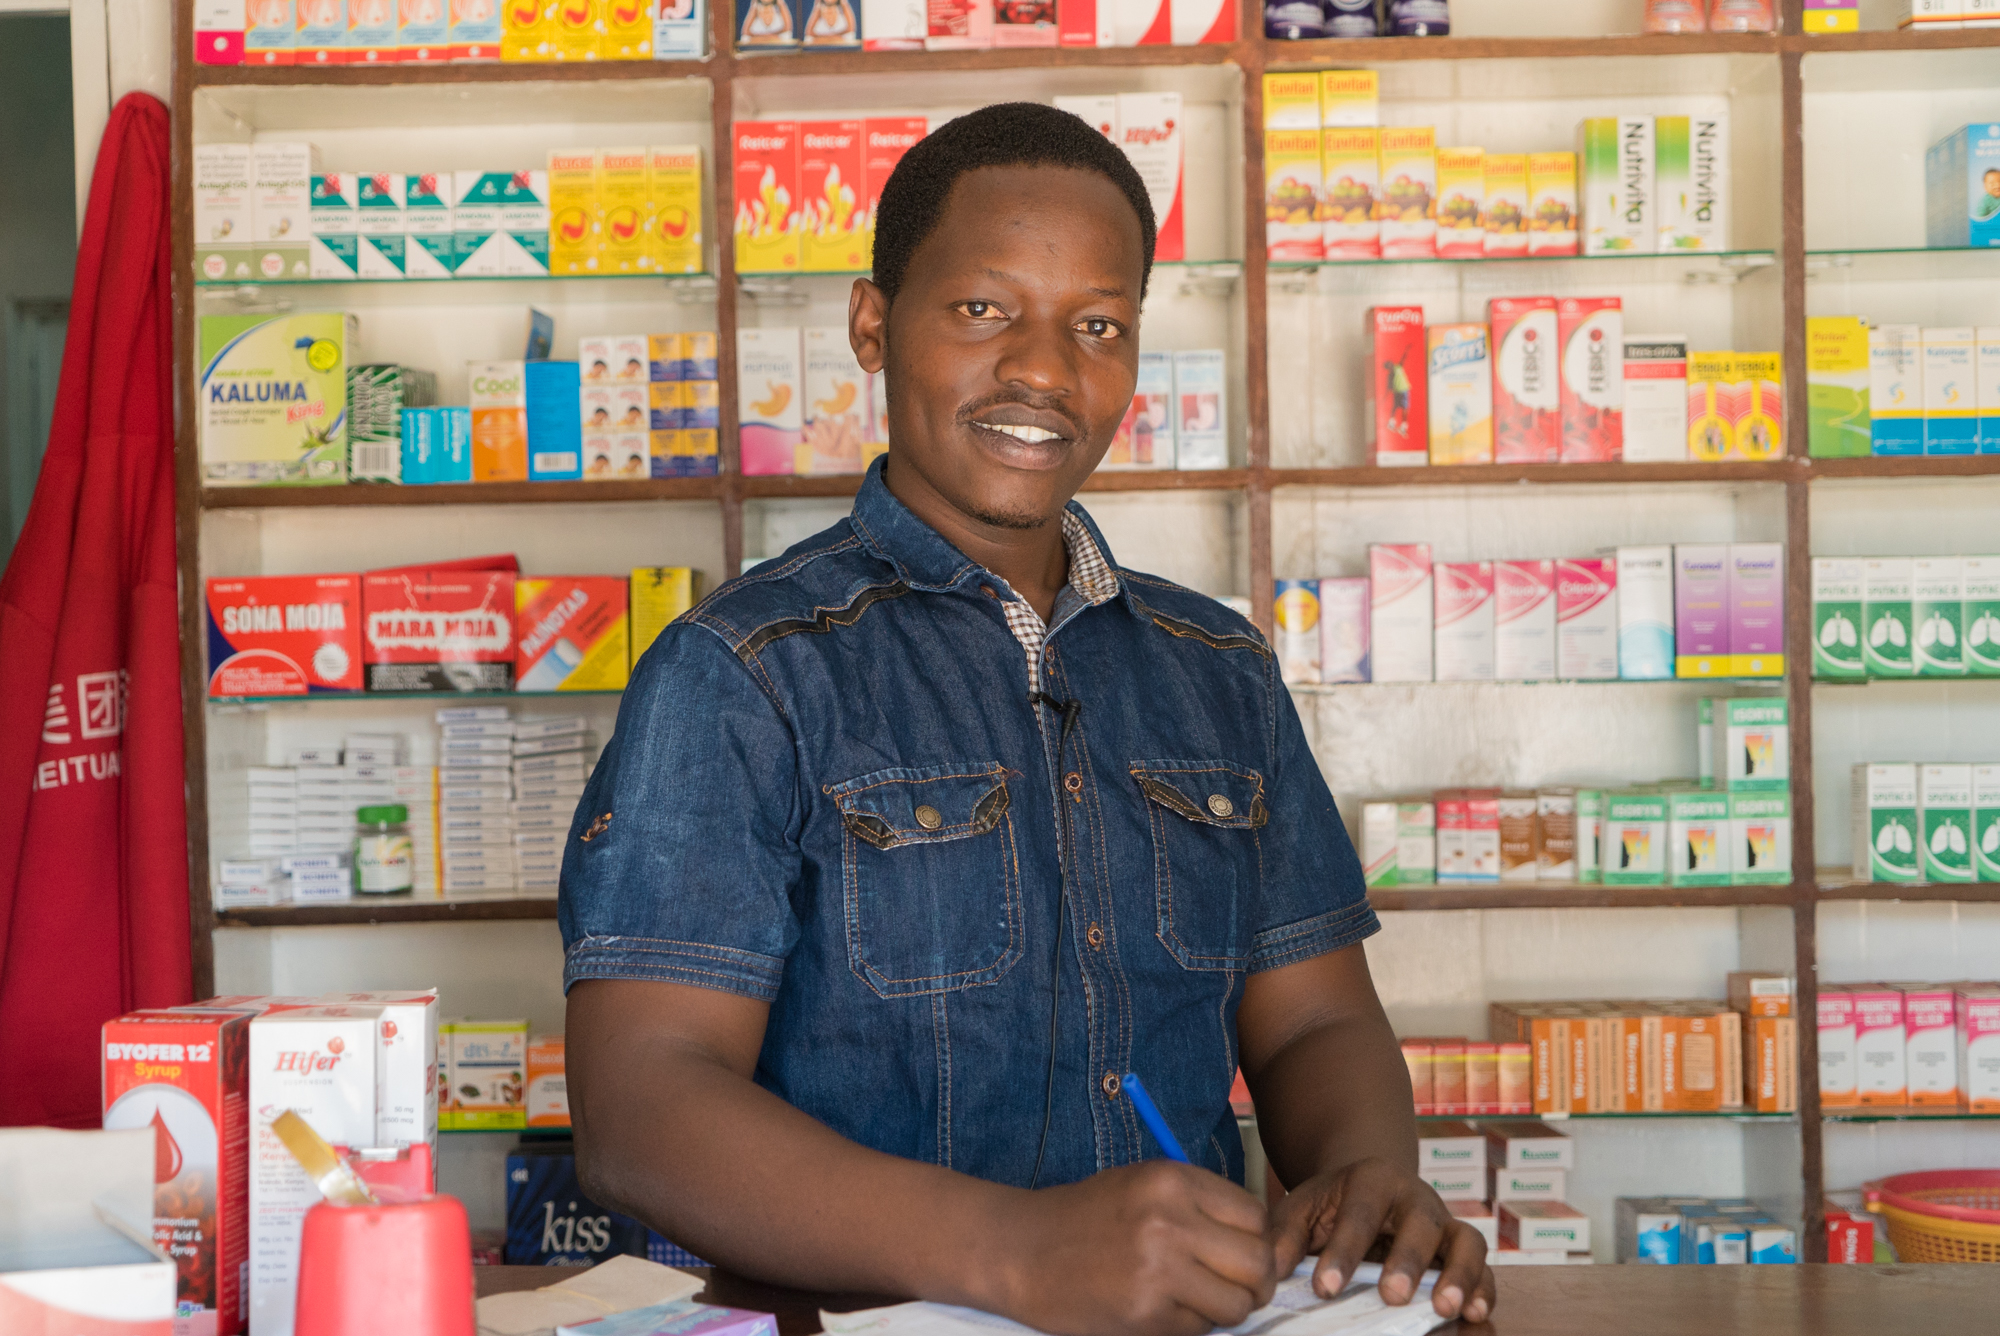 Highlights from our interview with Alvin, a pharmacist between the slums and the middle income area in Kisumu.